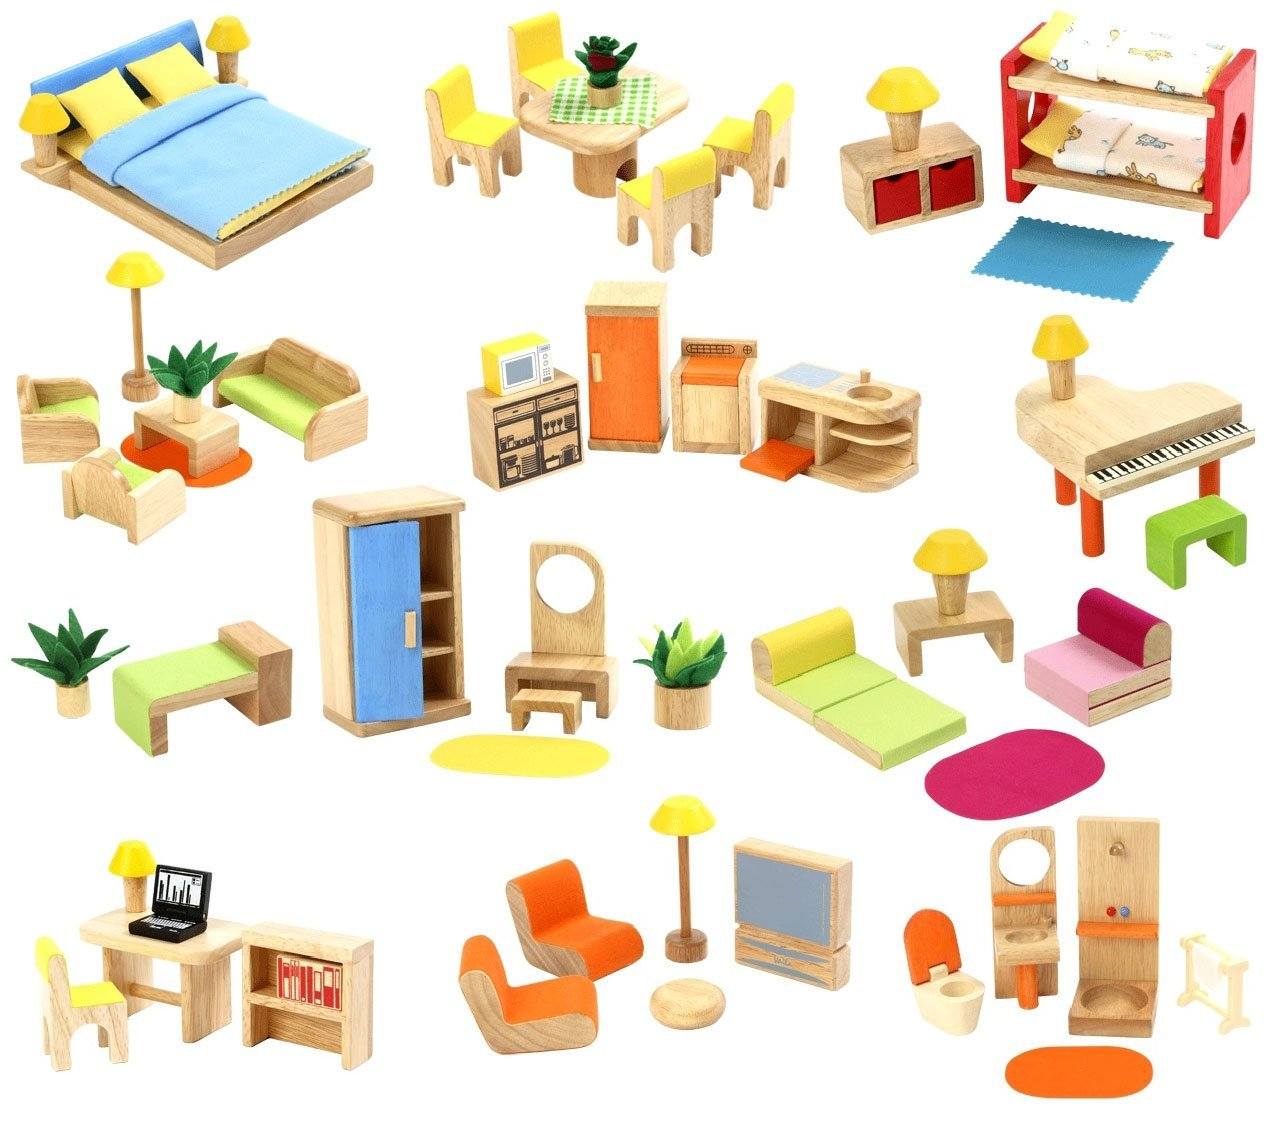 Rooms In The House And Furniture Activities